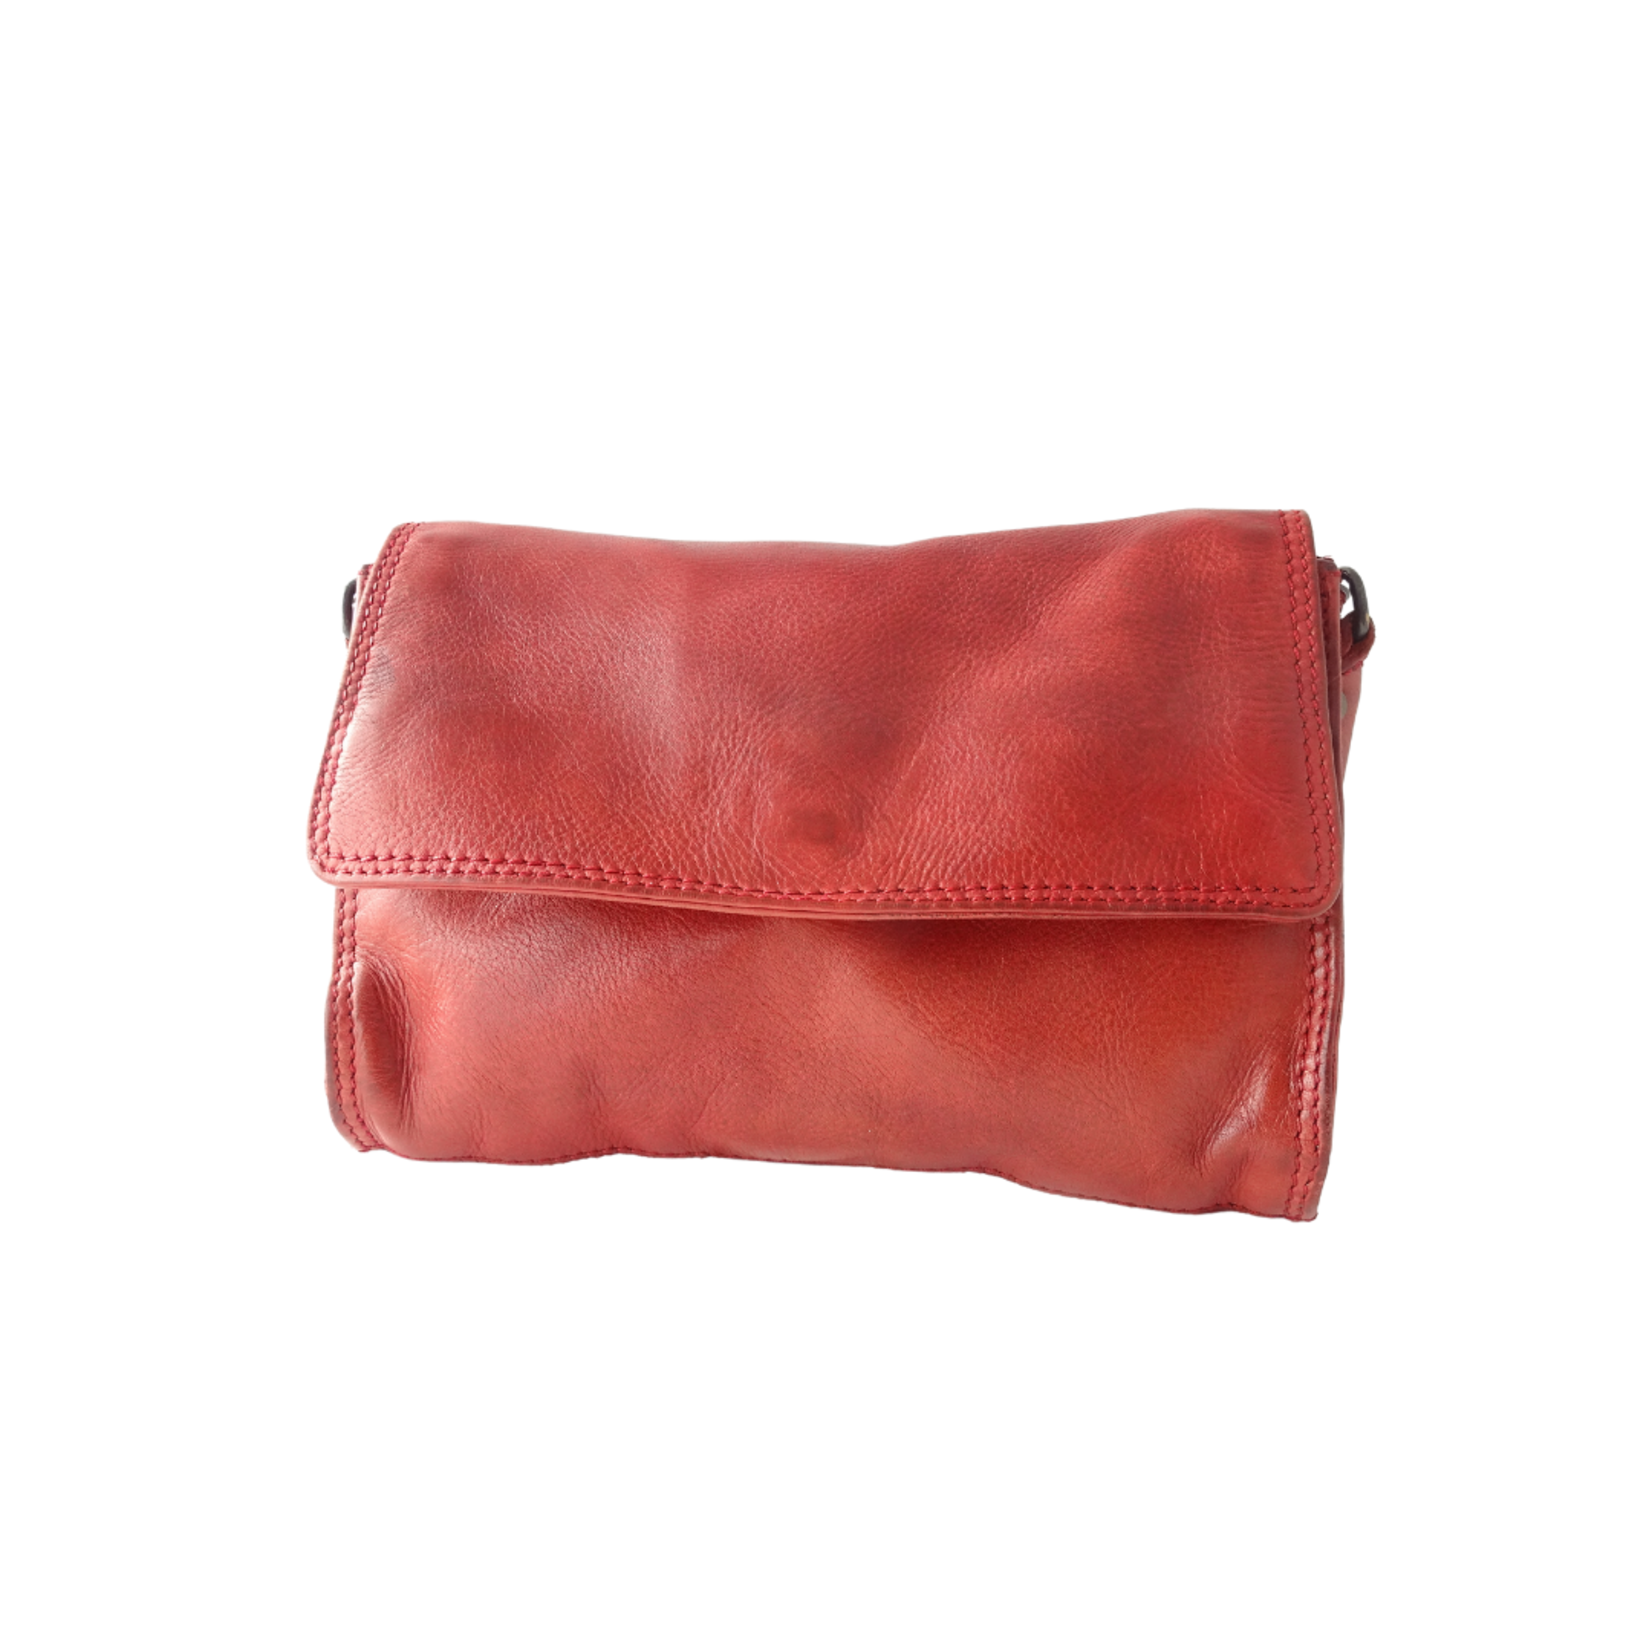 The Trend The Trend 22303 red